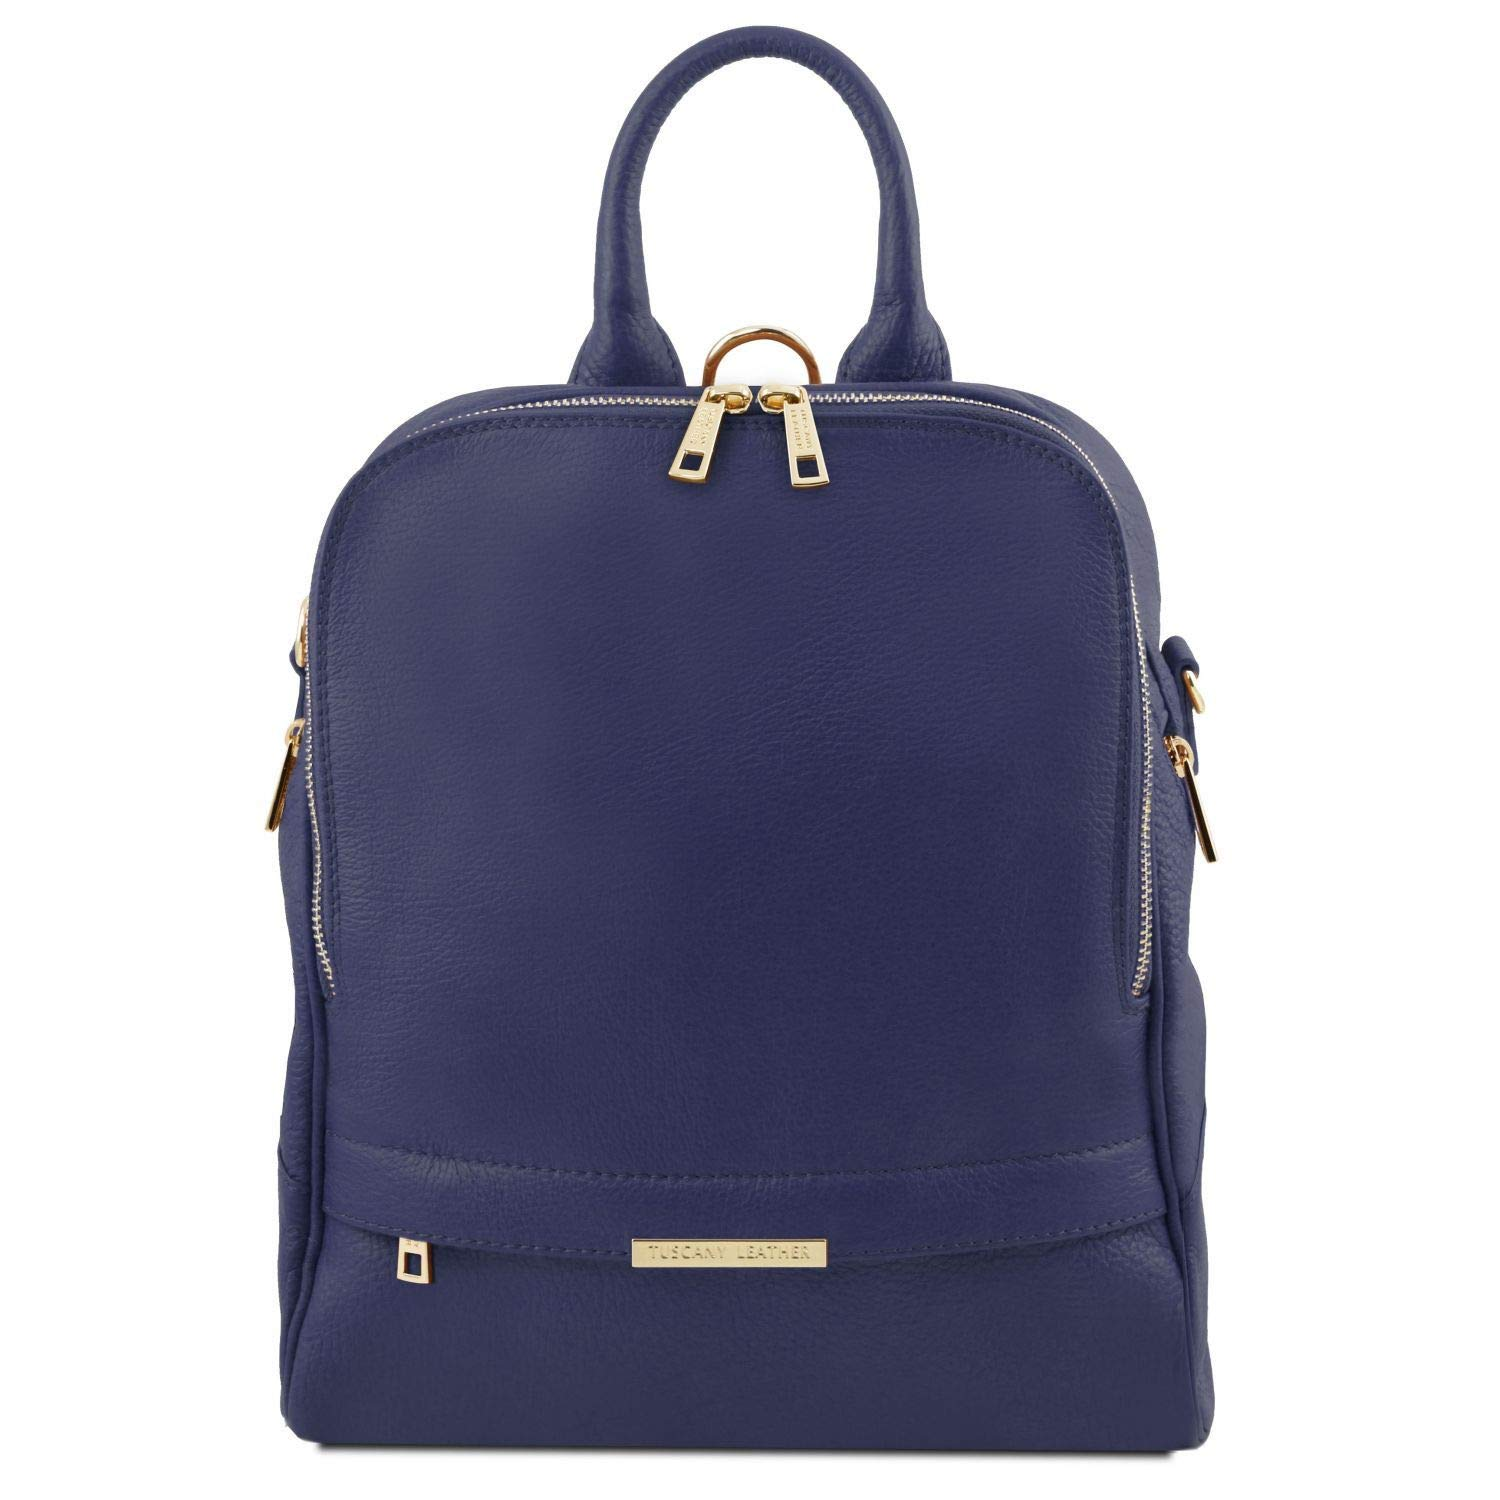 Tuscany Leather TLBag Soft leather backpack for women Dark Blue